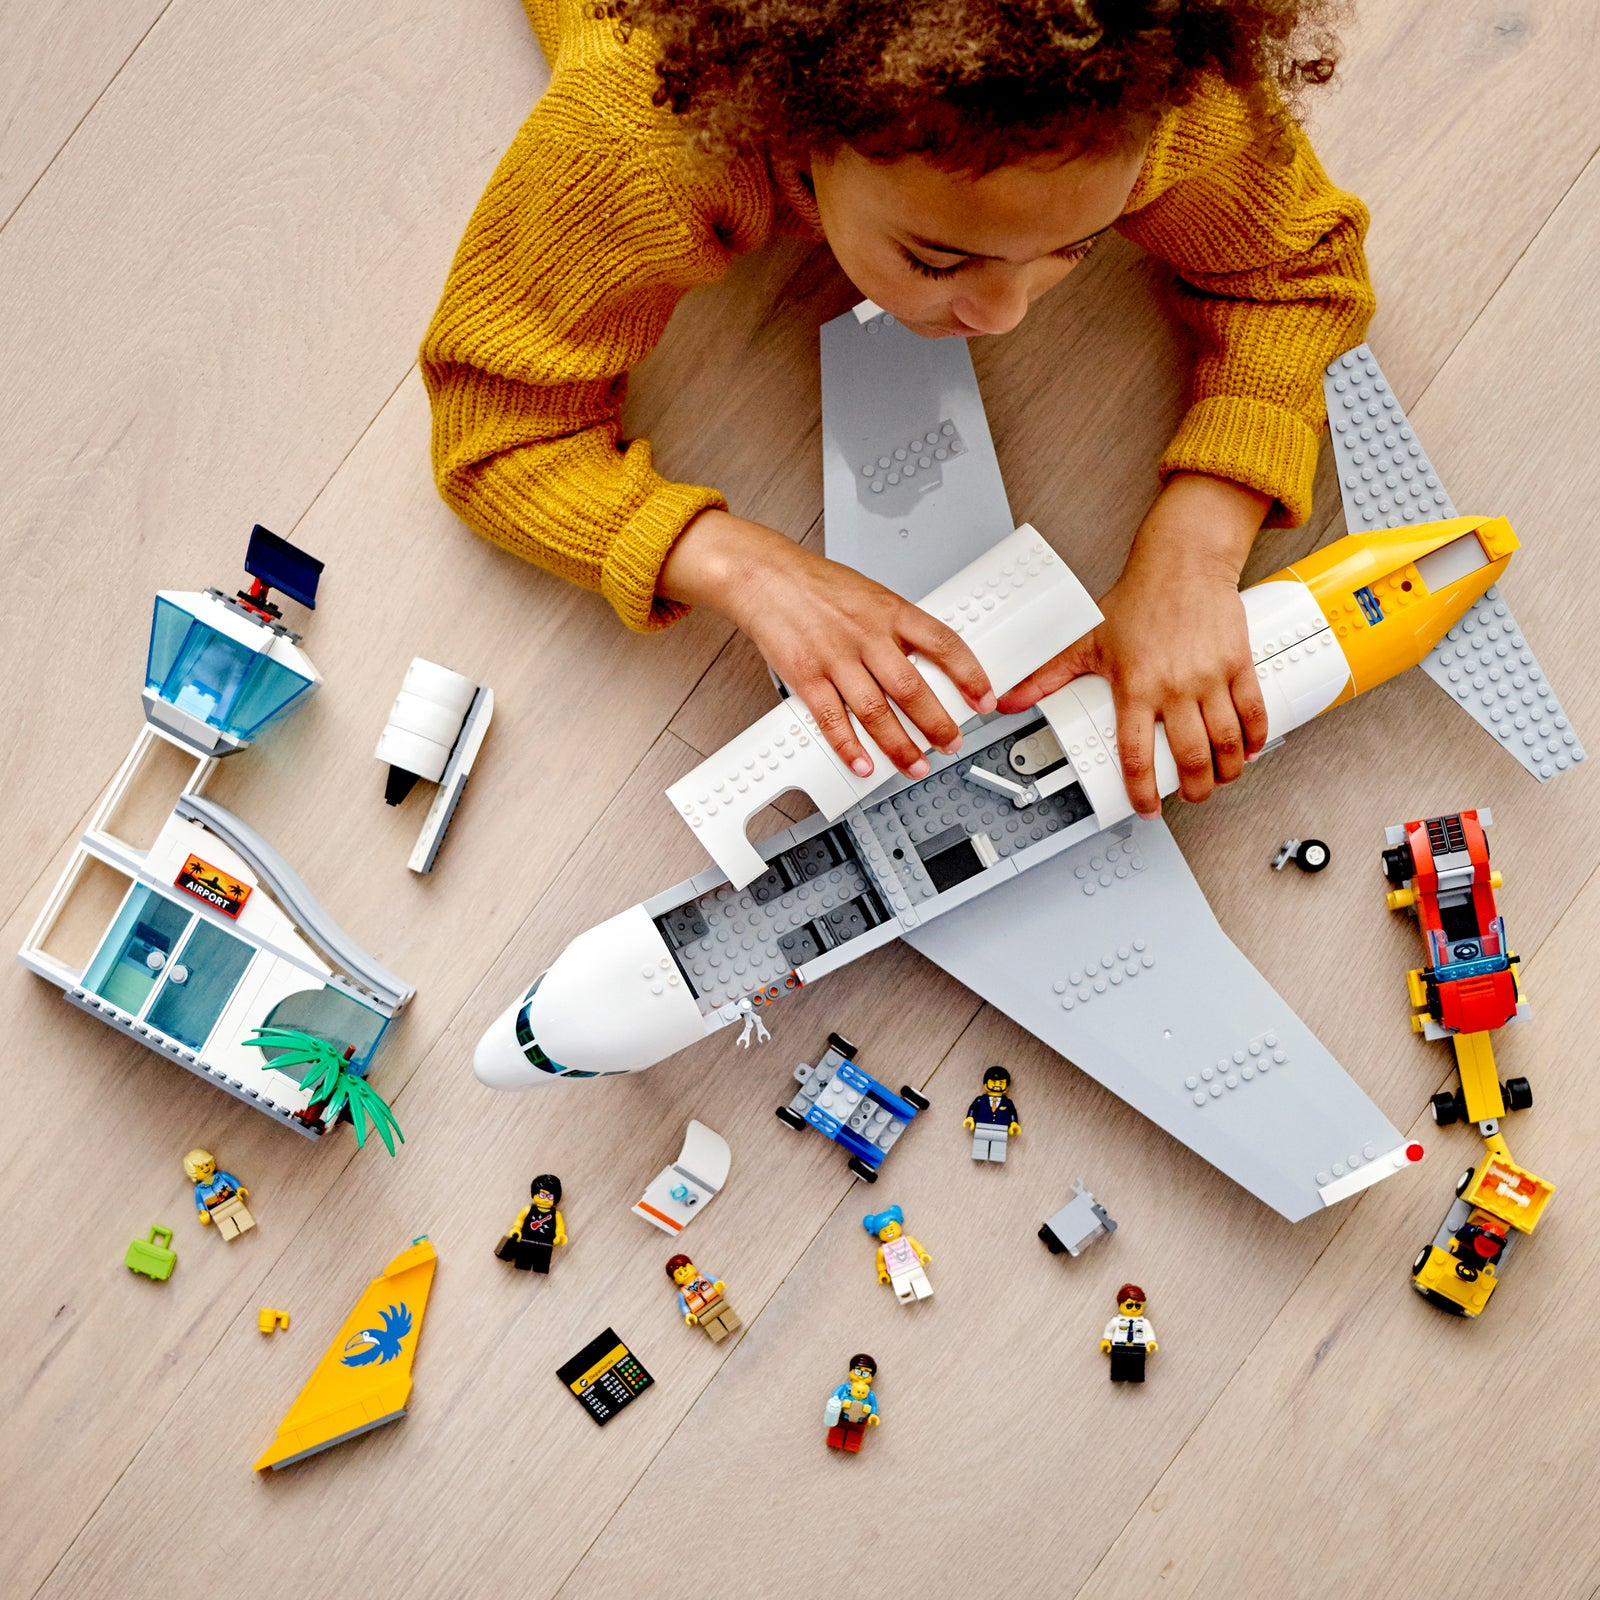 LEGO City: Passenger Airplane - (60262)